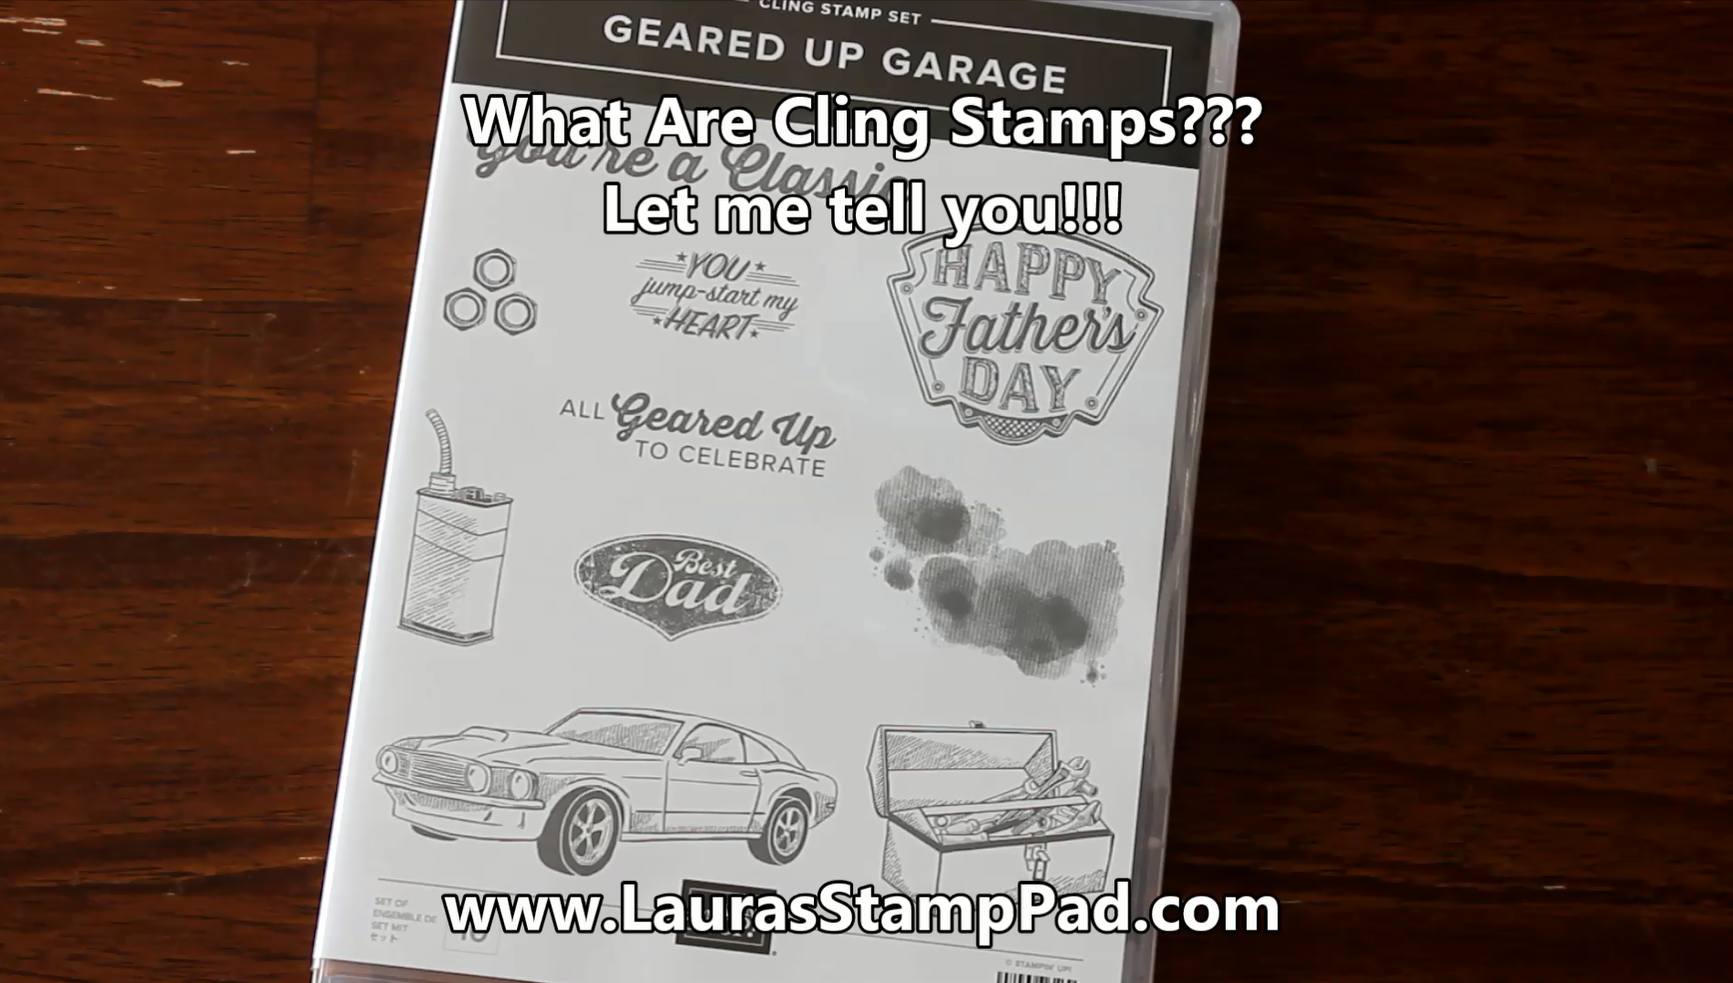 What are cling stamps, www.LaurasStampPad.com